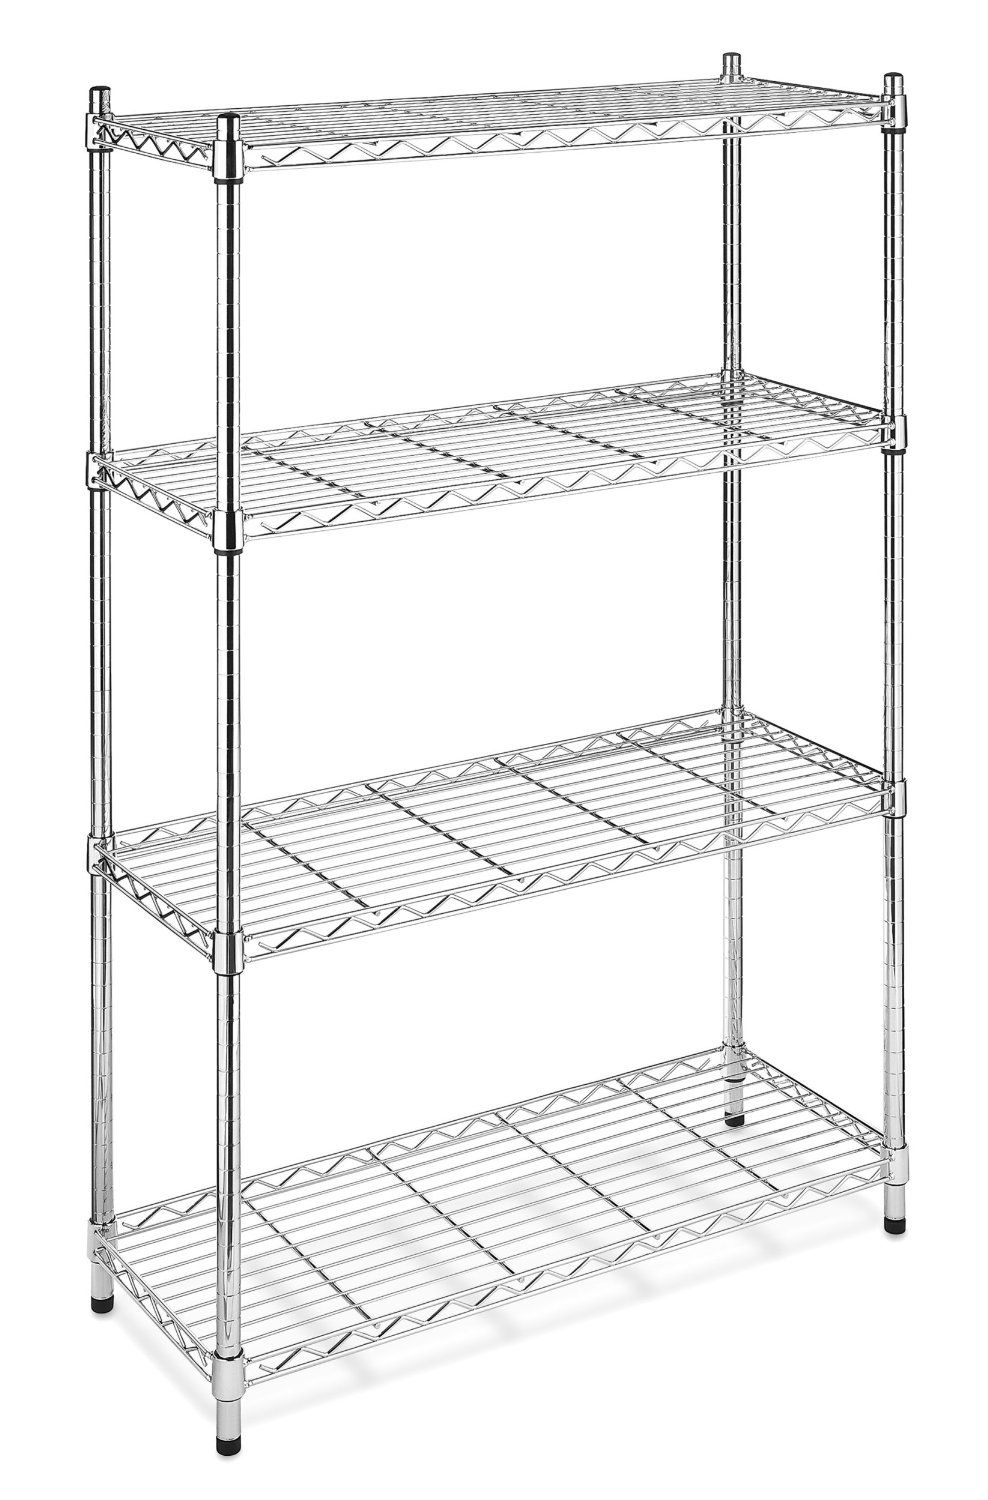 Amazon.com - Whitmor 6060-322 Supreme 4-Tier Shelving Unit, Chrome ...